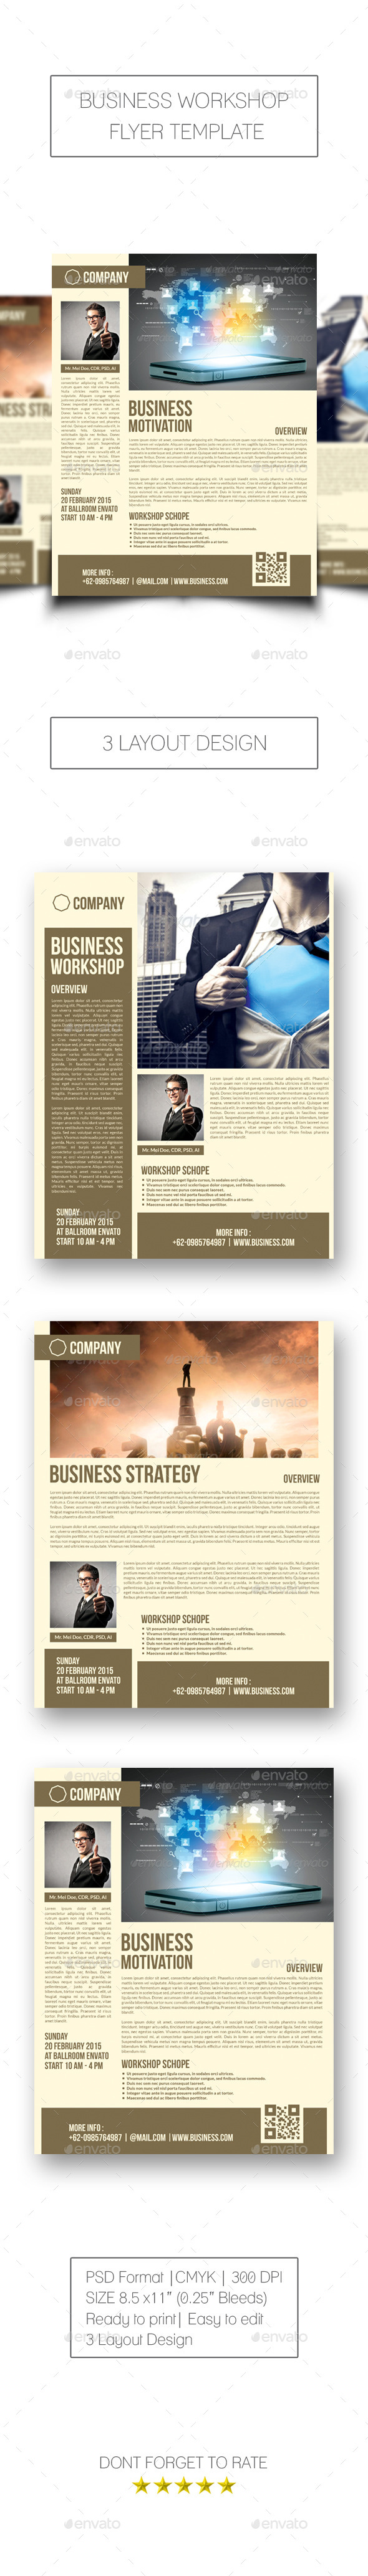 Business Workshop Flyer - Corporate Flyers